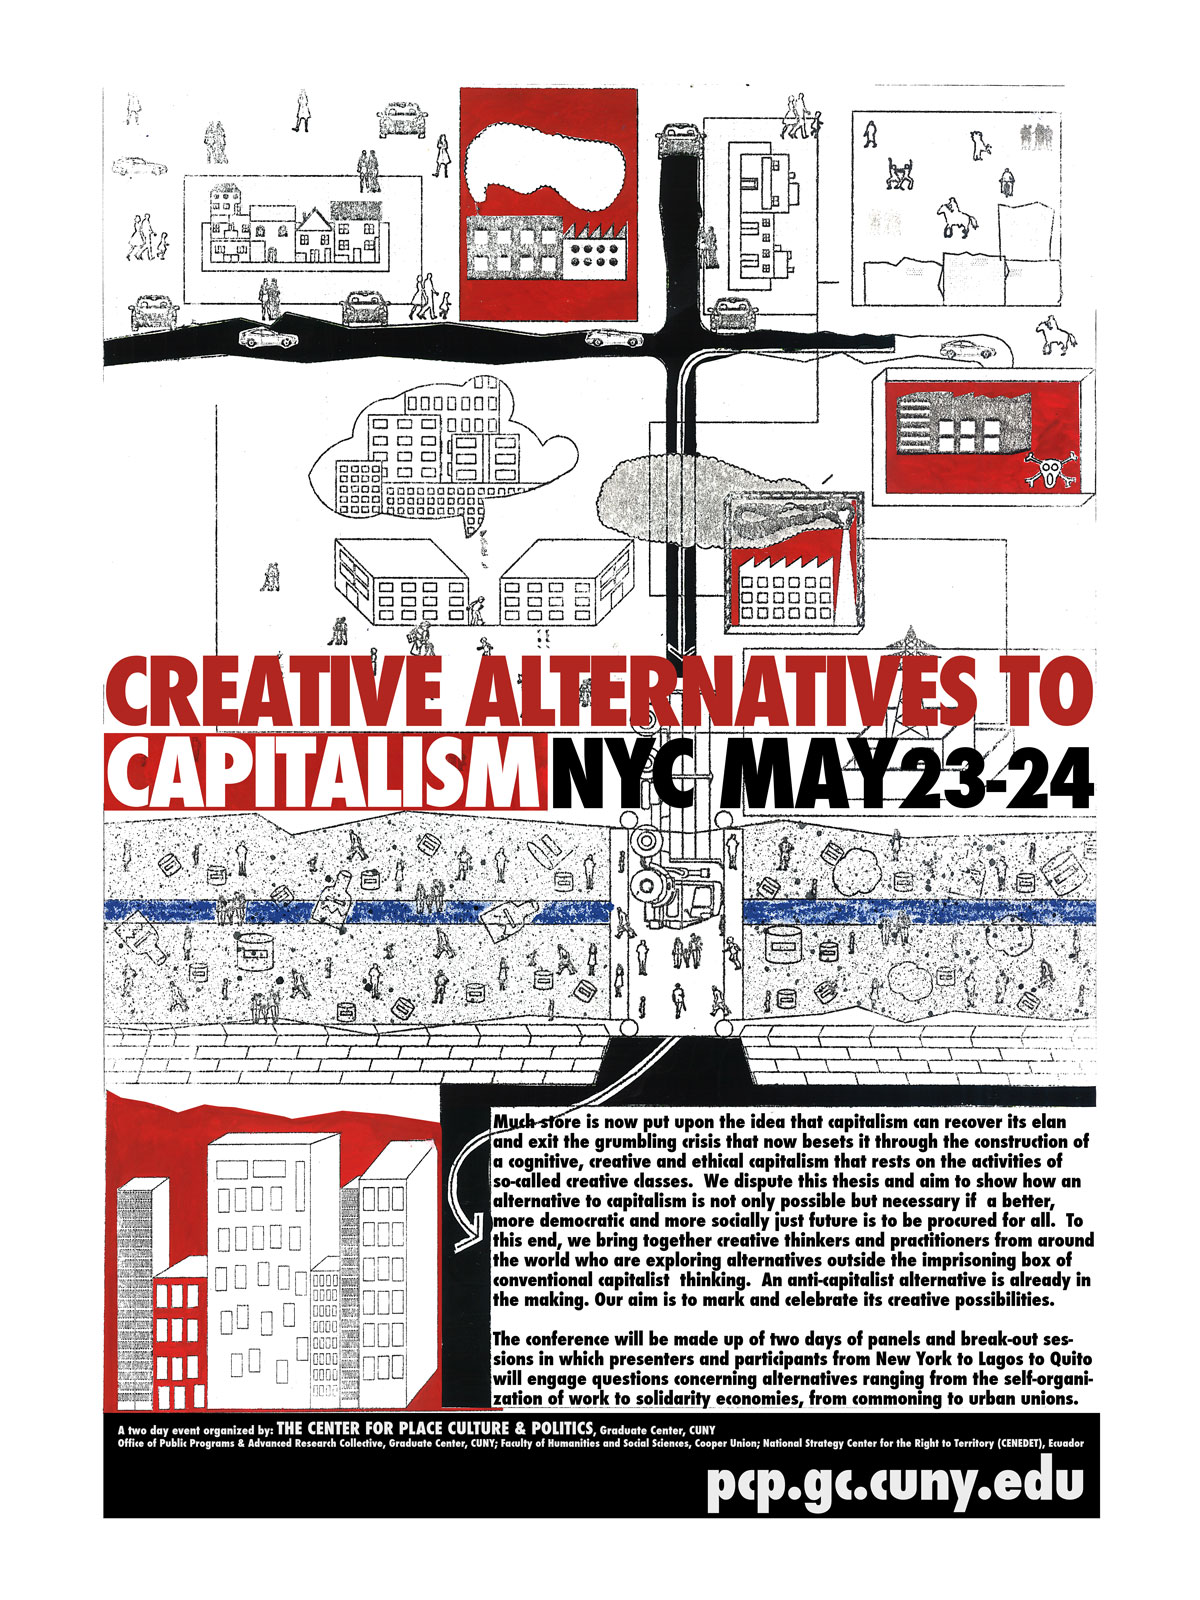 Creative Alternatives to Capitalism Conference